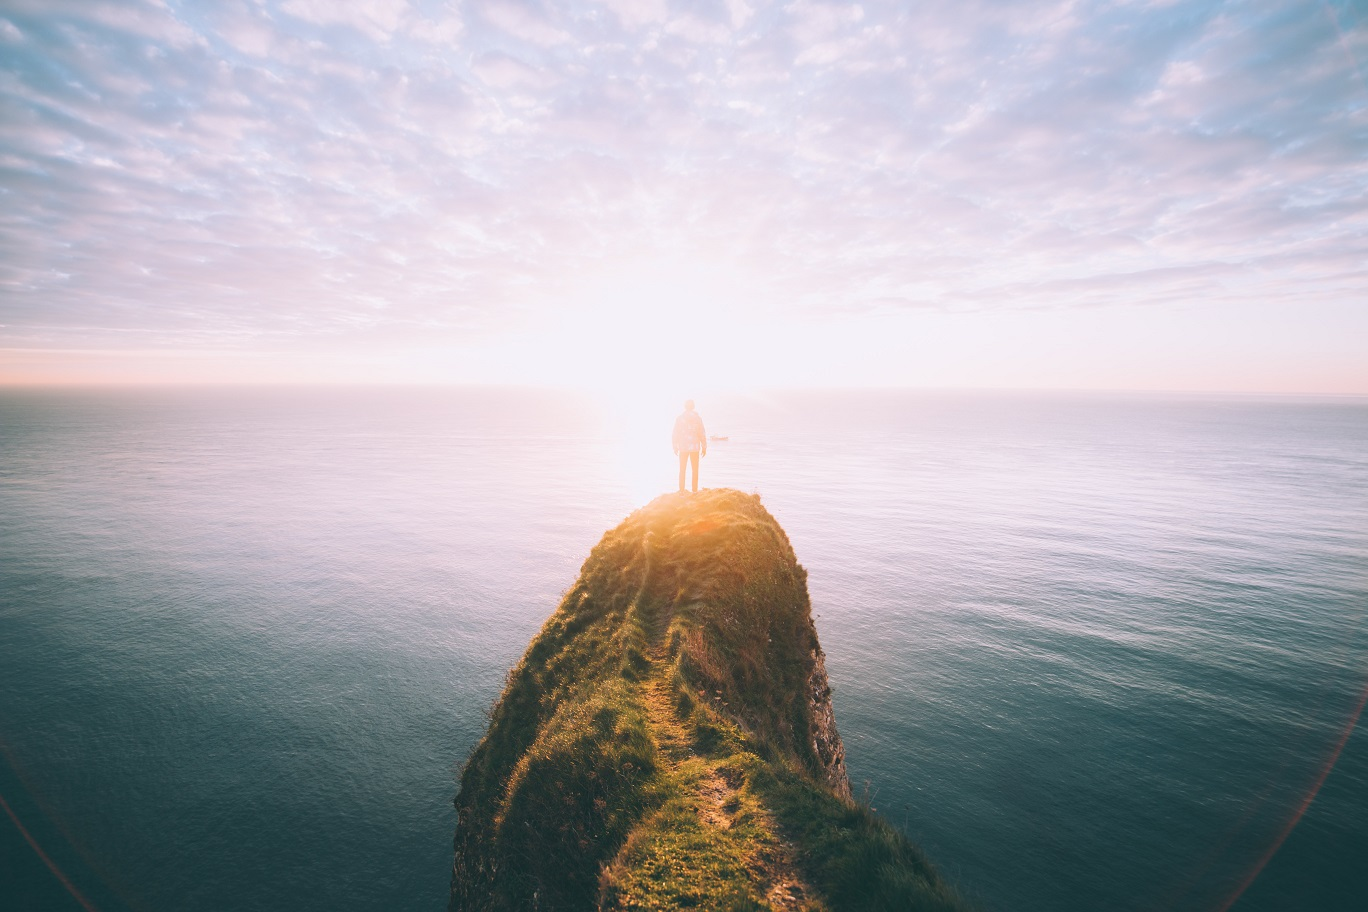 man standing on a rock by himself